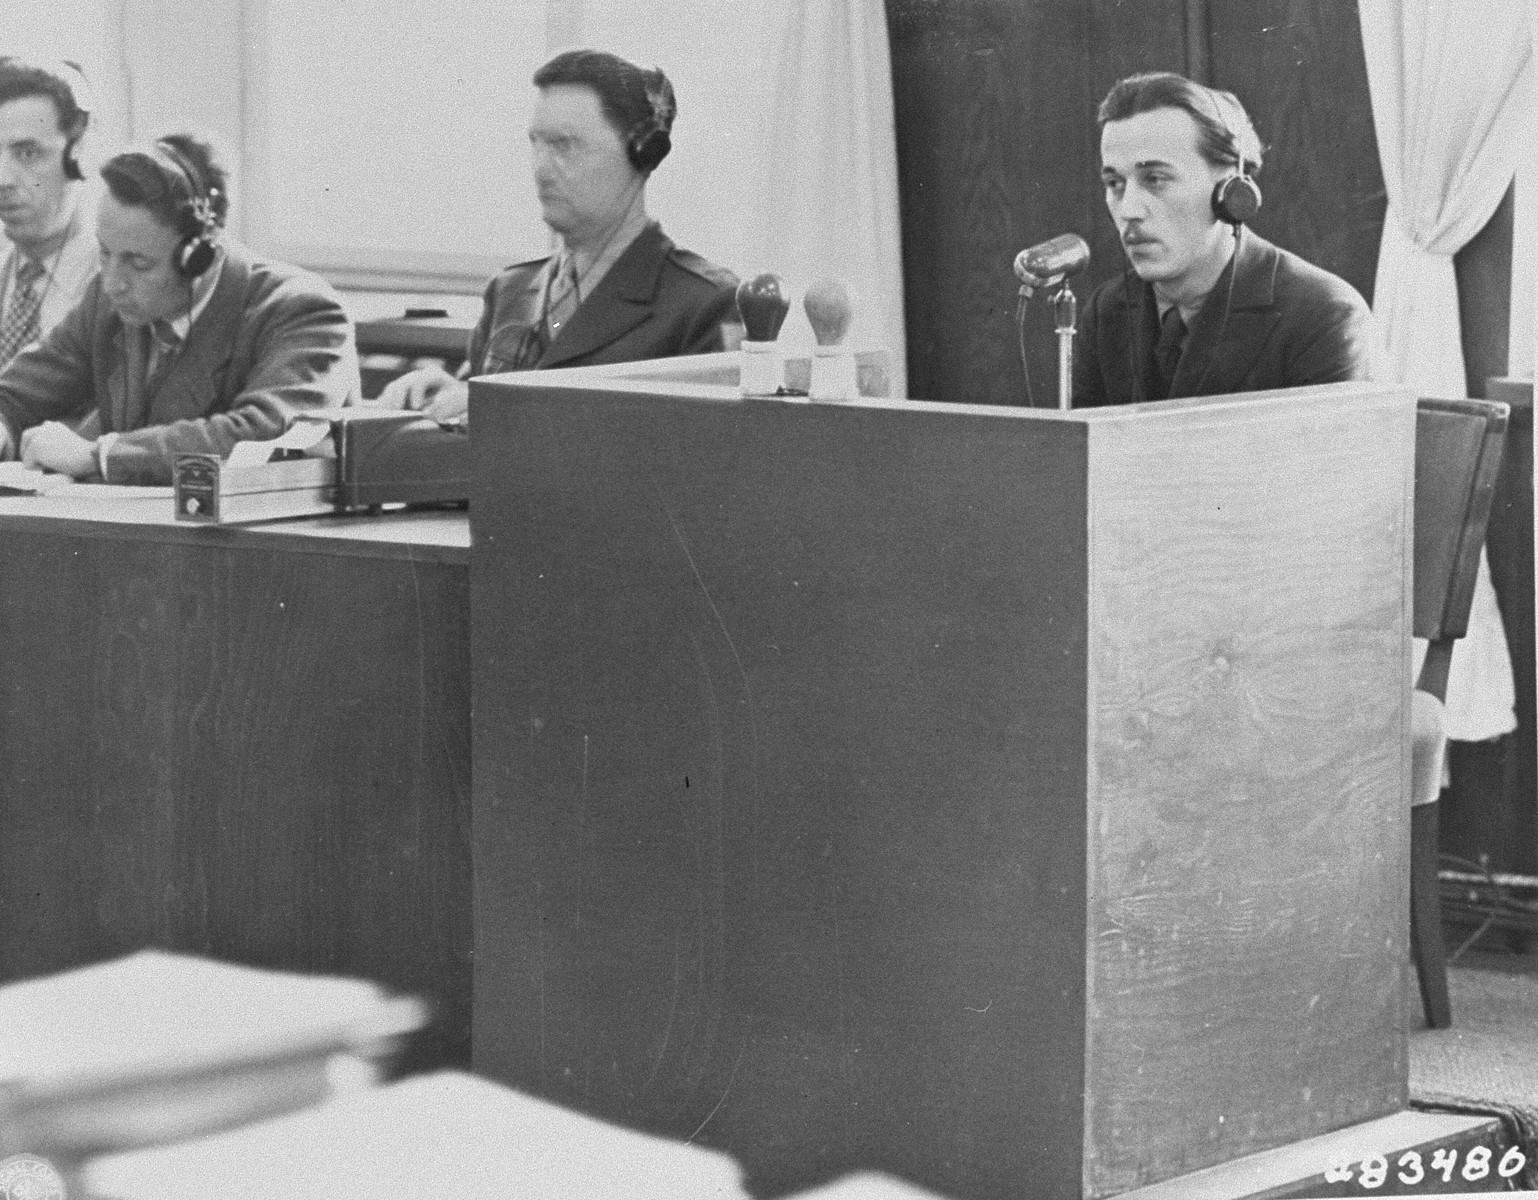 A former Polish inmate of Auschwitz identifies Oswald Pohl while on the stand for the prosecution during the Pohl/WVHA trial.  This took place in a room in the Palace of Justice which was not the main courtroom.